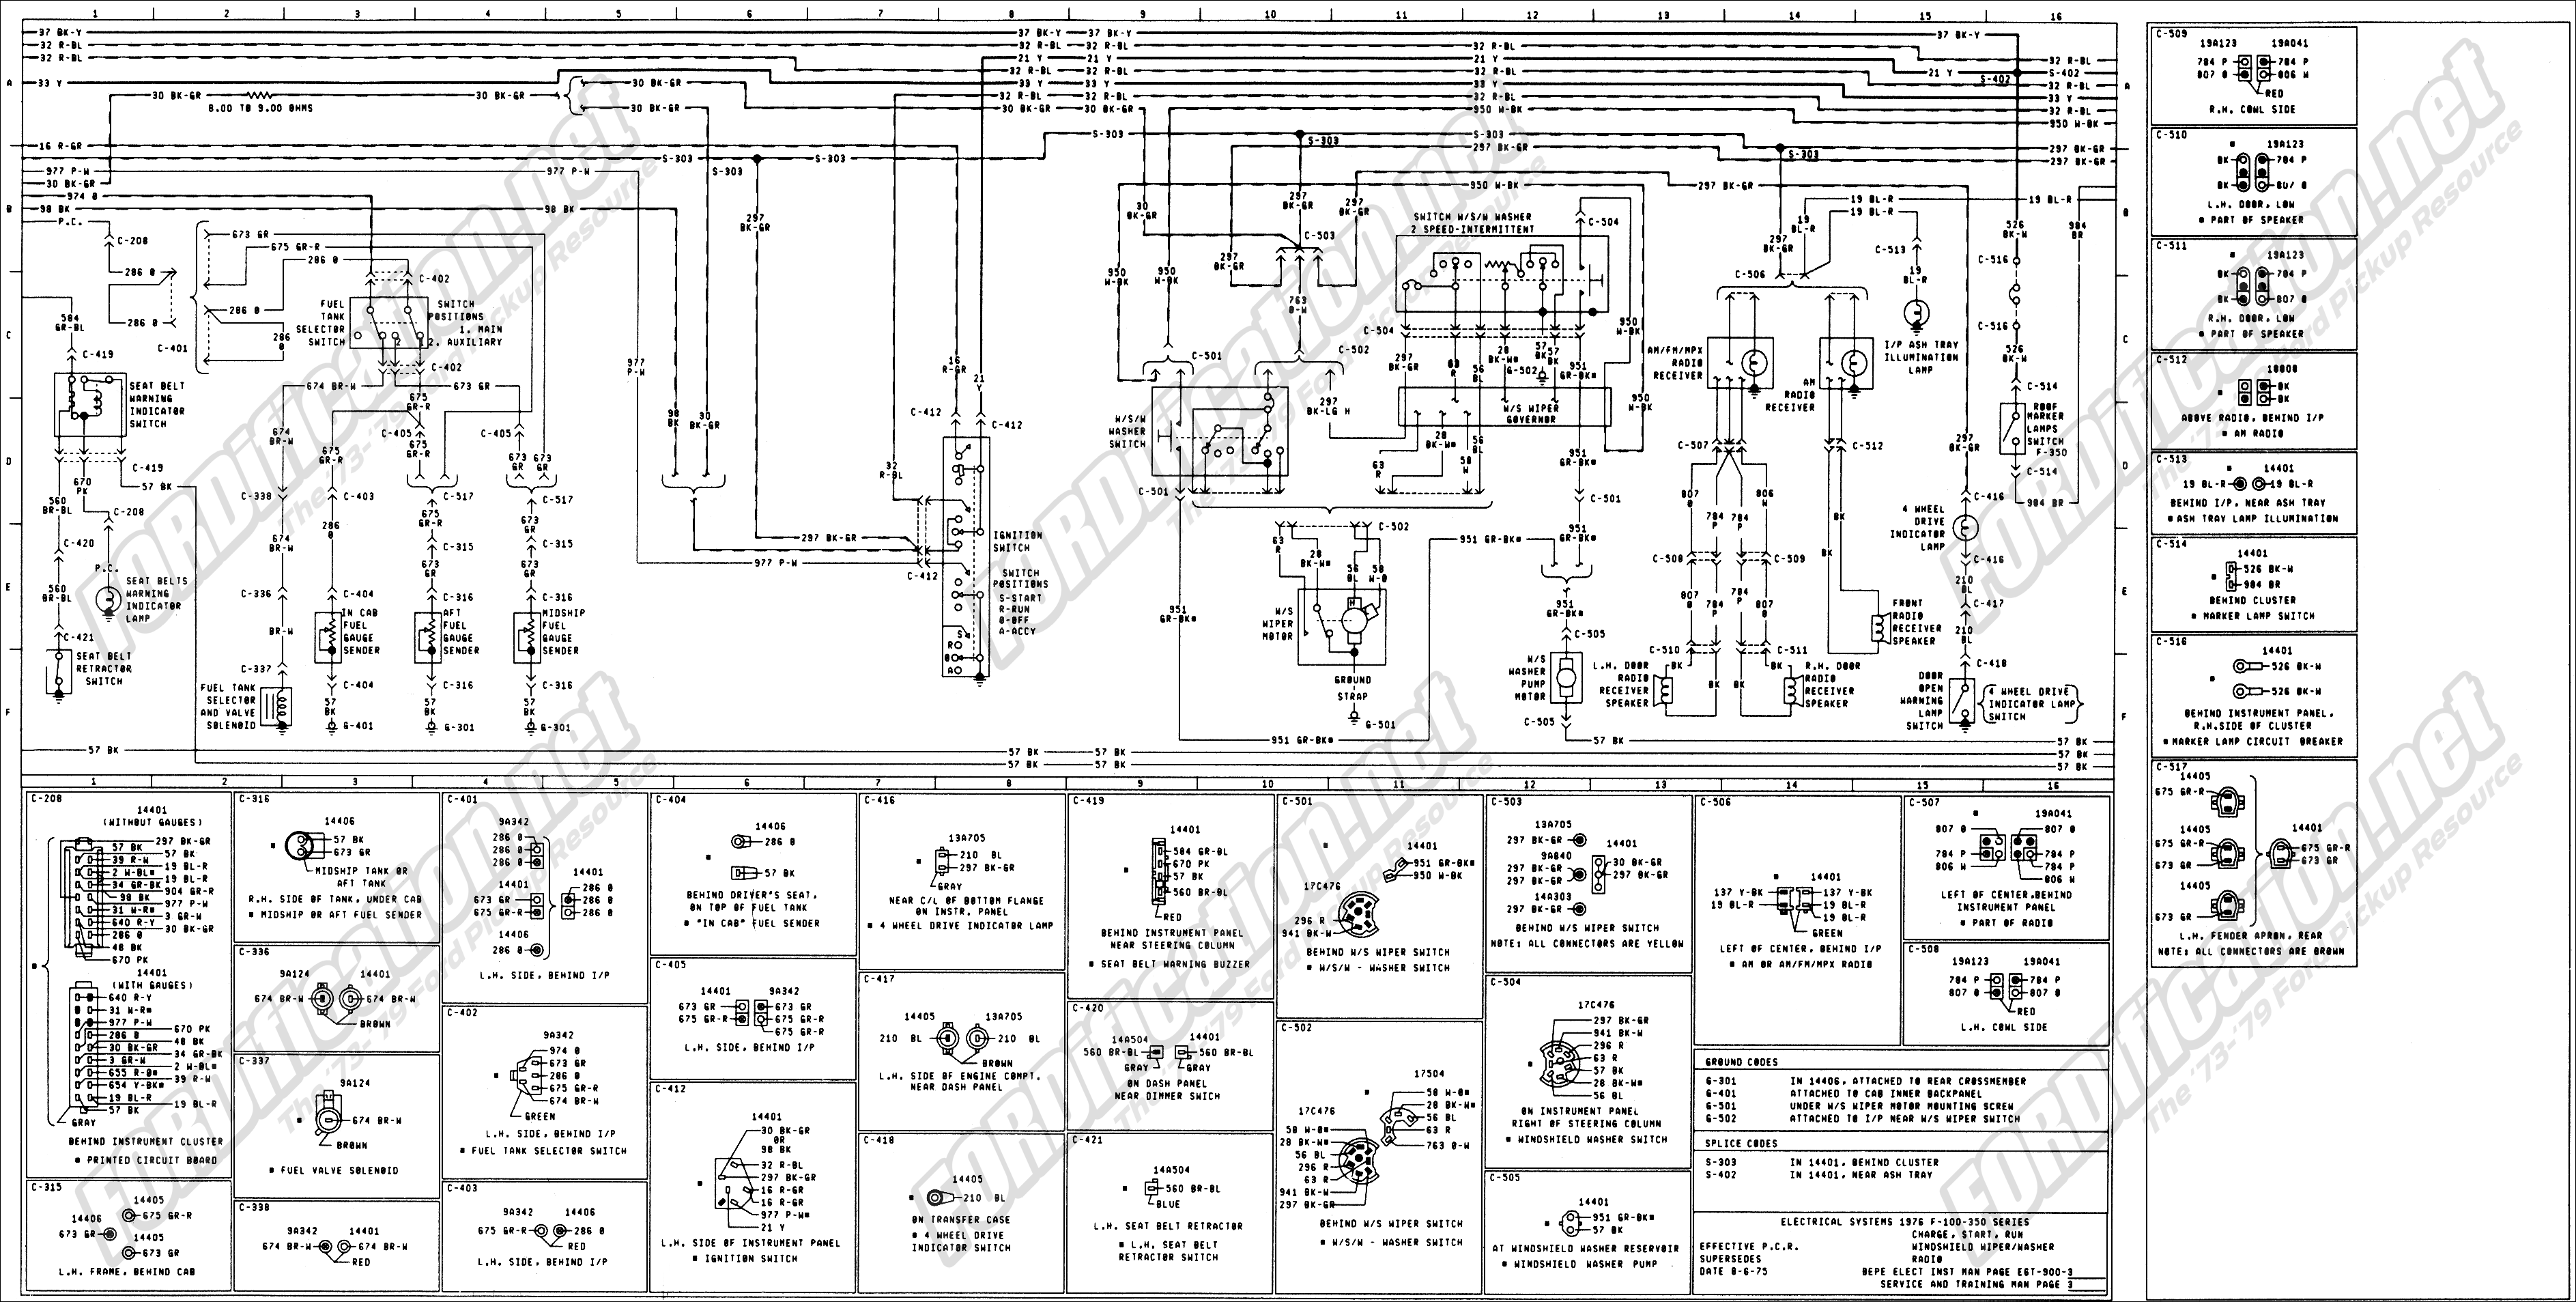 wiring_76master_3of9 1973 ford f250 wiring diagram ford f 150 starter wiring diagram ford f250 wiring diagram online at nearapp.co